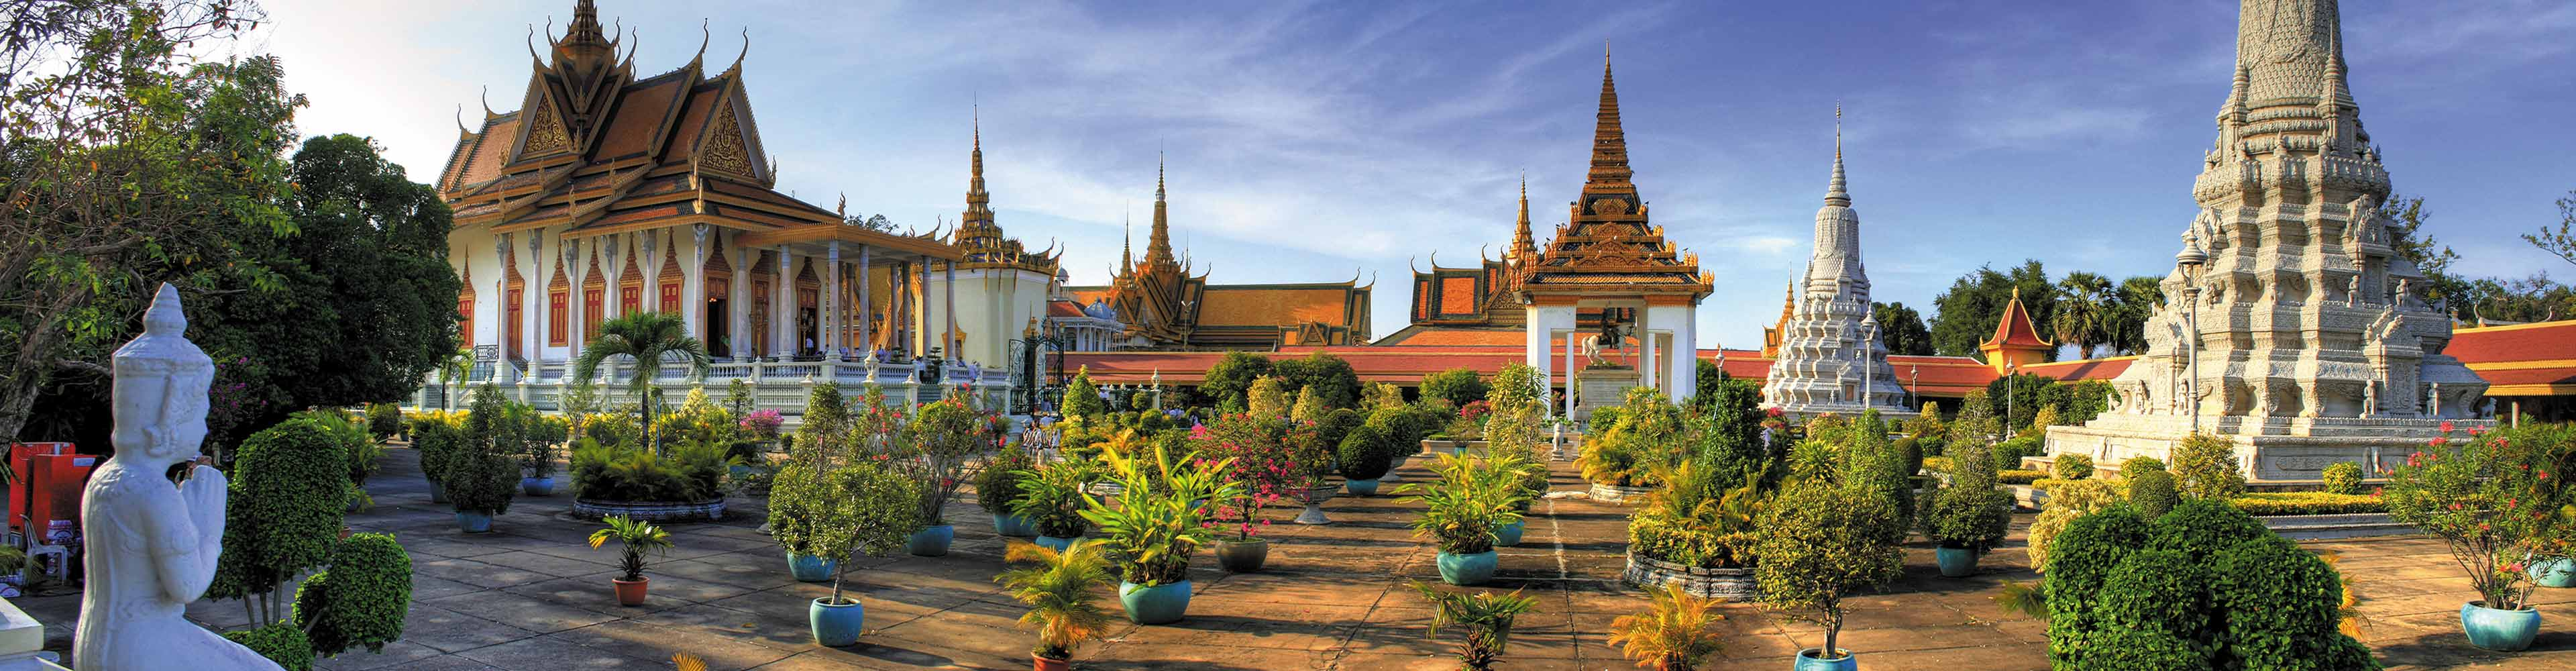 Best of Northern Thailand, Laos & Cambodia